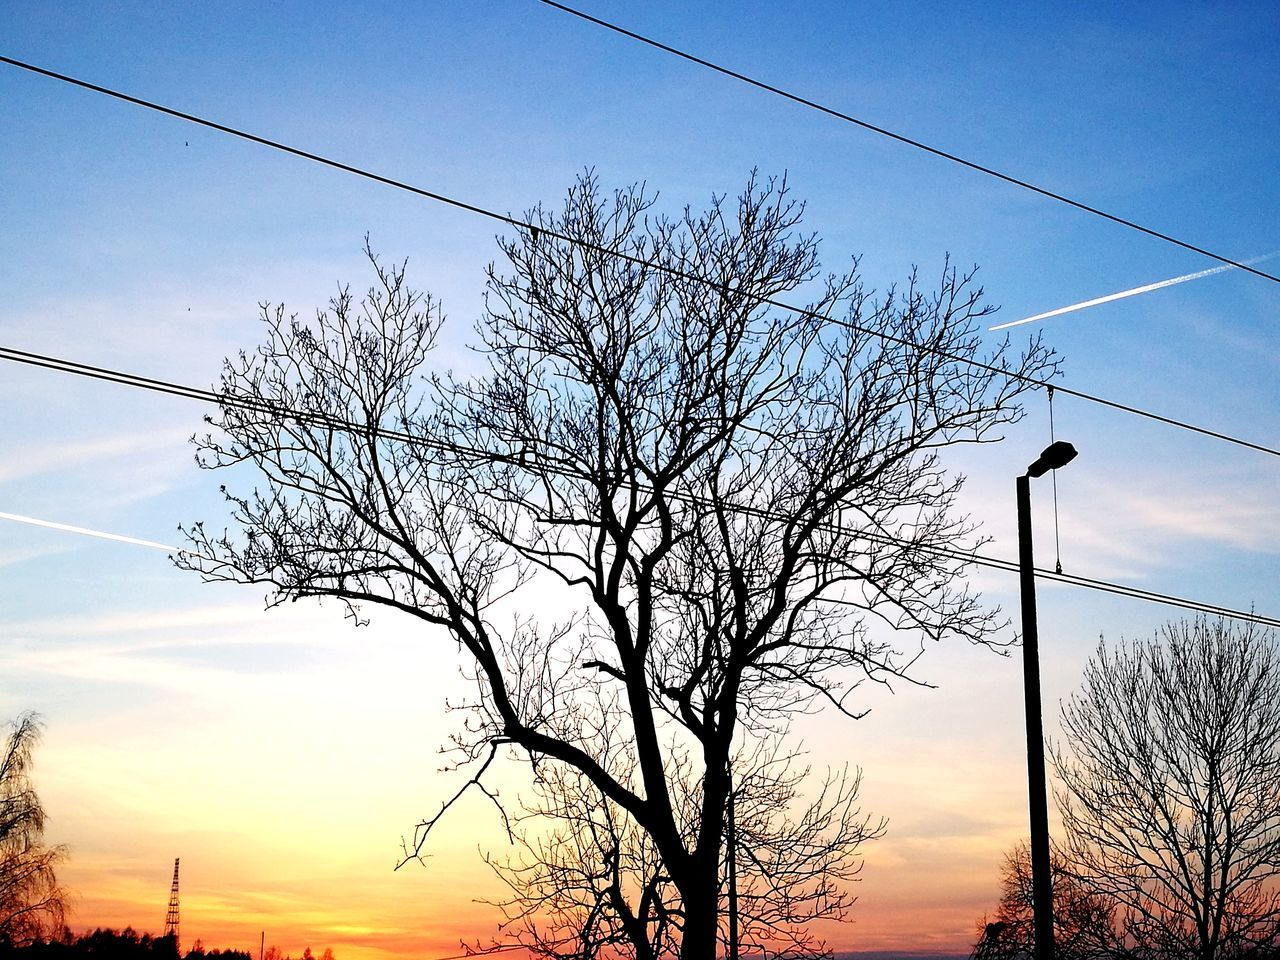 Sunset 😱 Sunset✨trees✨ Sunset Sunlight No People Sky Nature Beauty In Nature Day Tree Spring Is Coming Soon 🌸🌷🍀🌹🌻🌺 Reflection What Do You Think? Happy :) Sun Fun Amateurphotography Nofilter No Filter, No Edit, Just Photography Train Station Nature Natural Beauty Beauty In Nature Smartphone Photography HuaweiP9 Cloud - Sky